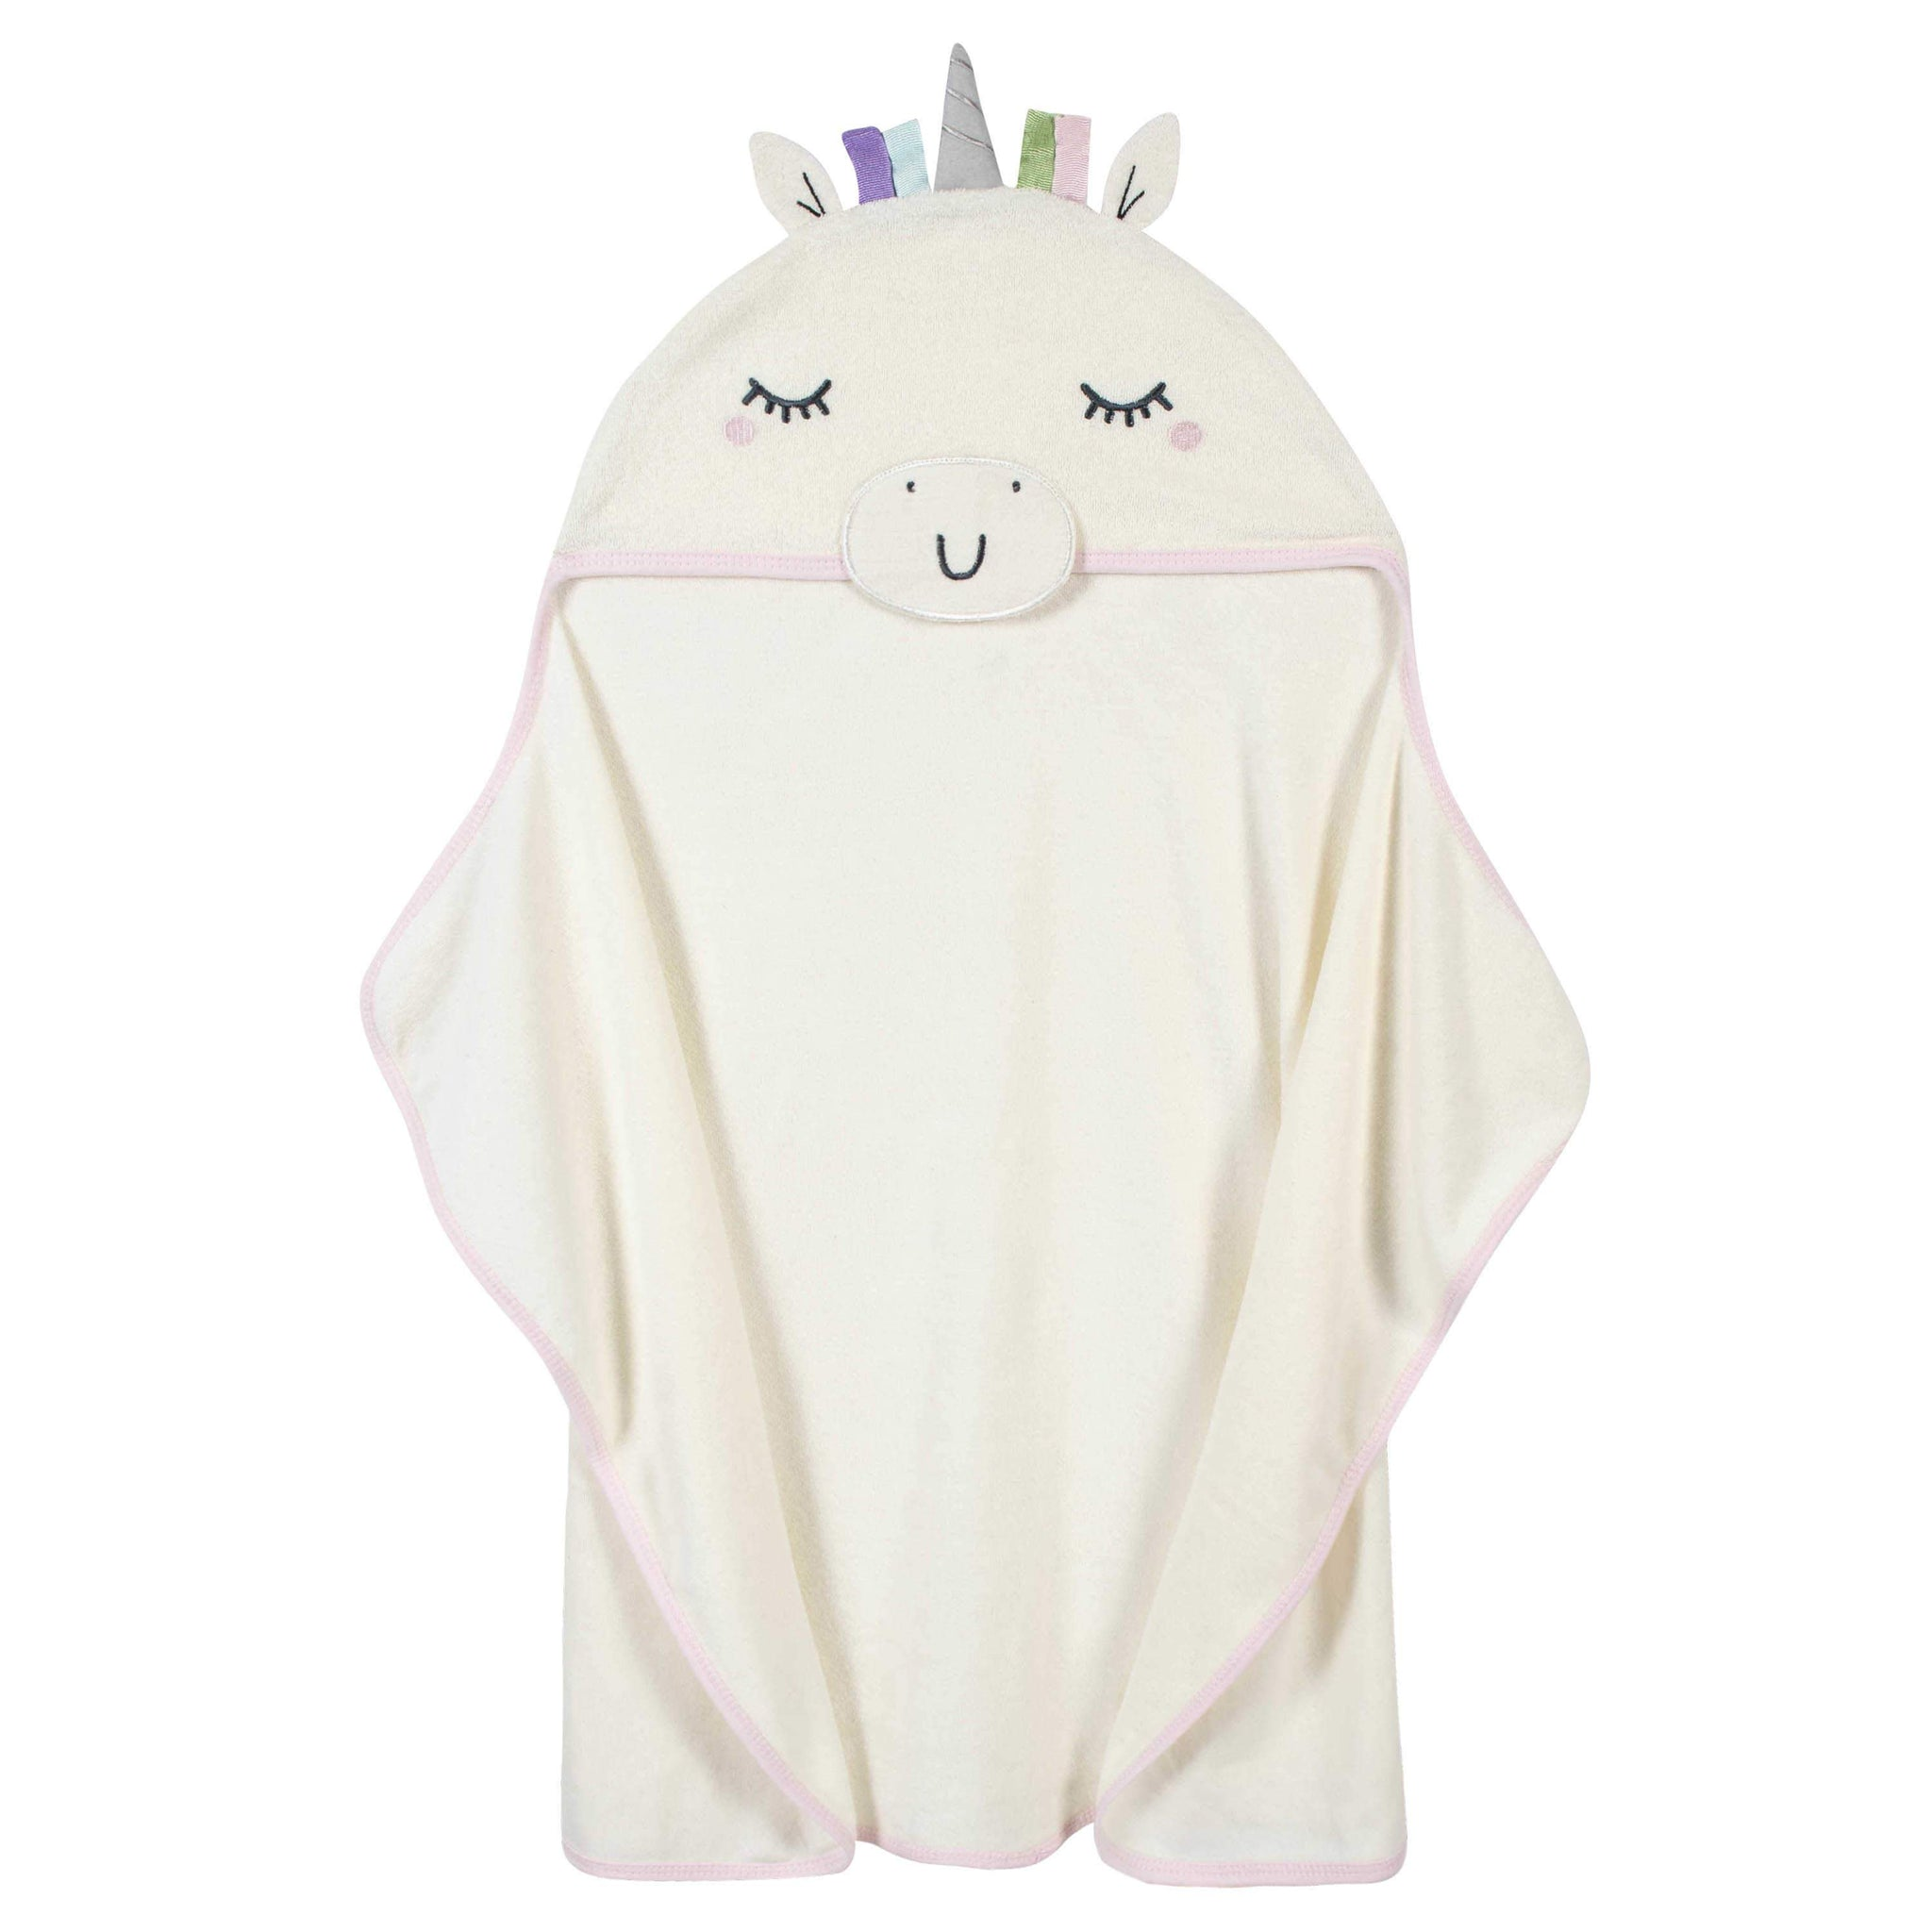 1-Pack Baby Girls' Unicorn Hooded Bath Wrap